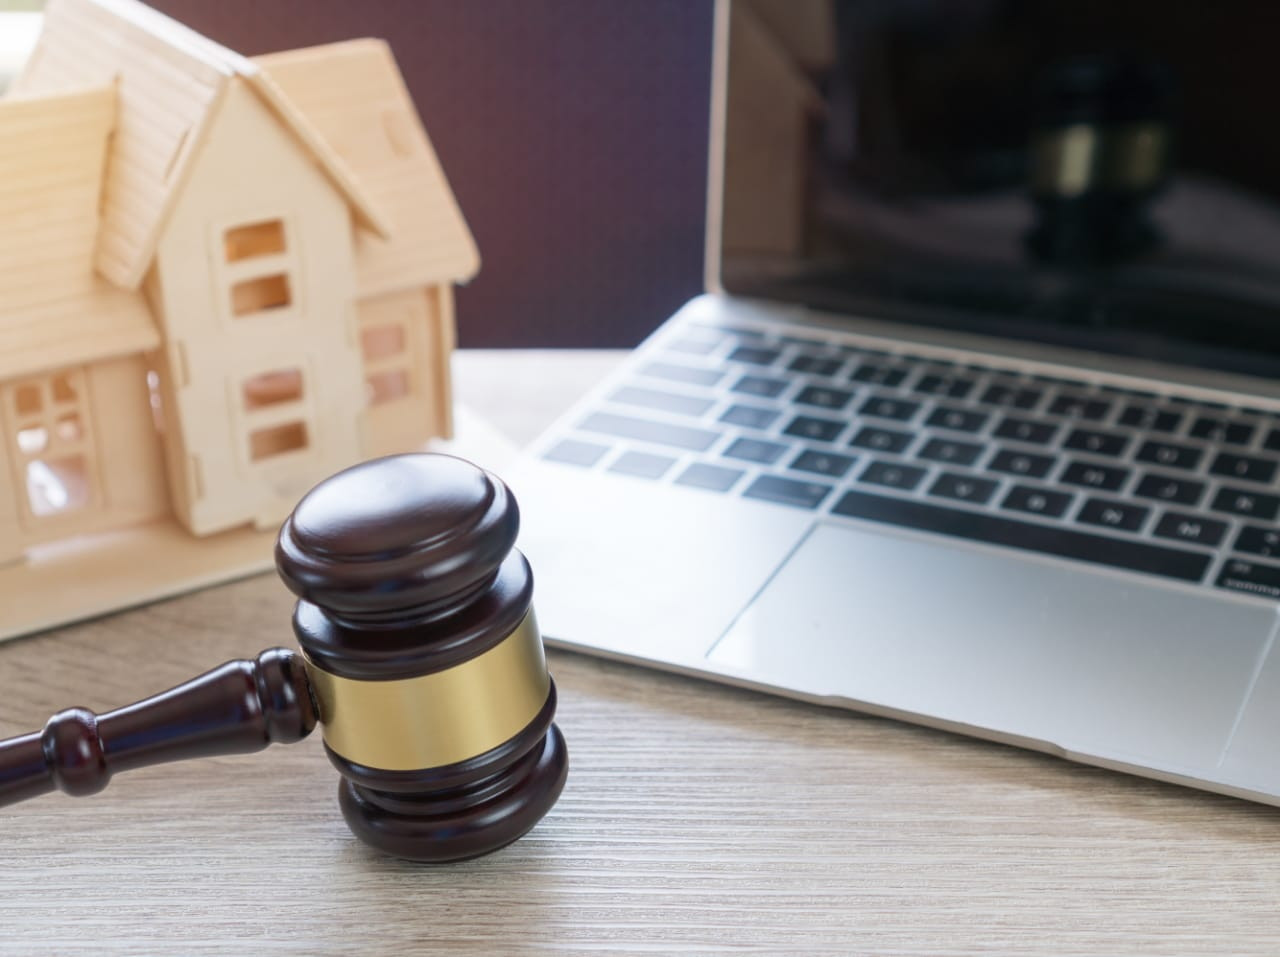 Kediri man kicks out own father, wins home ownership in court